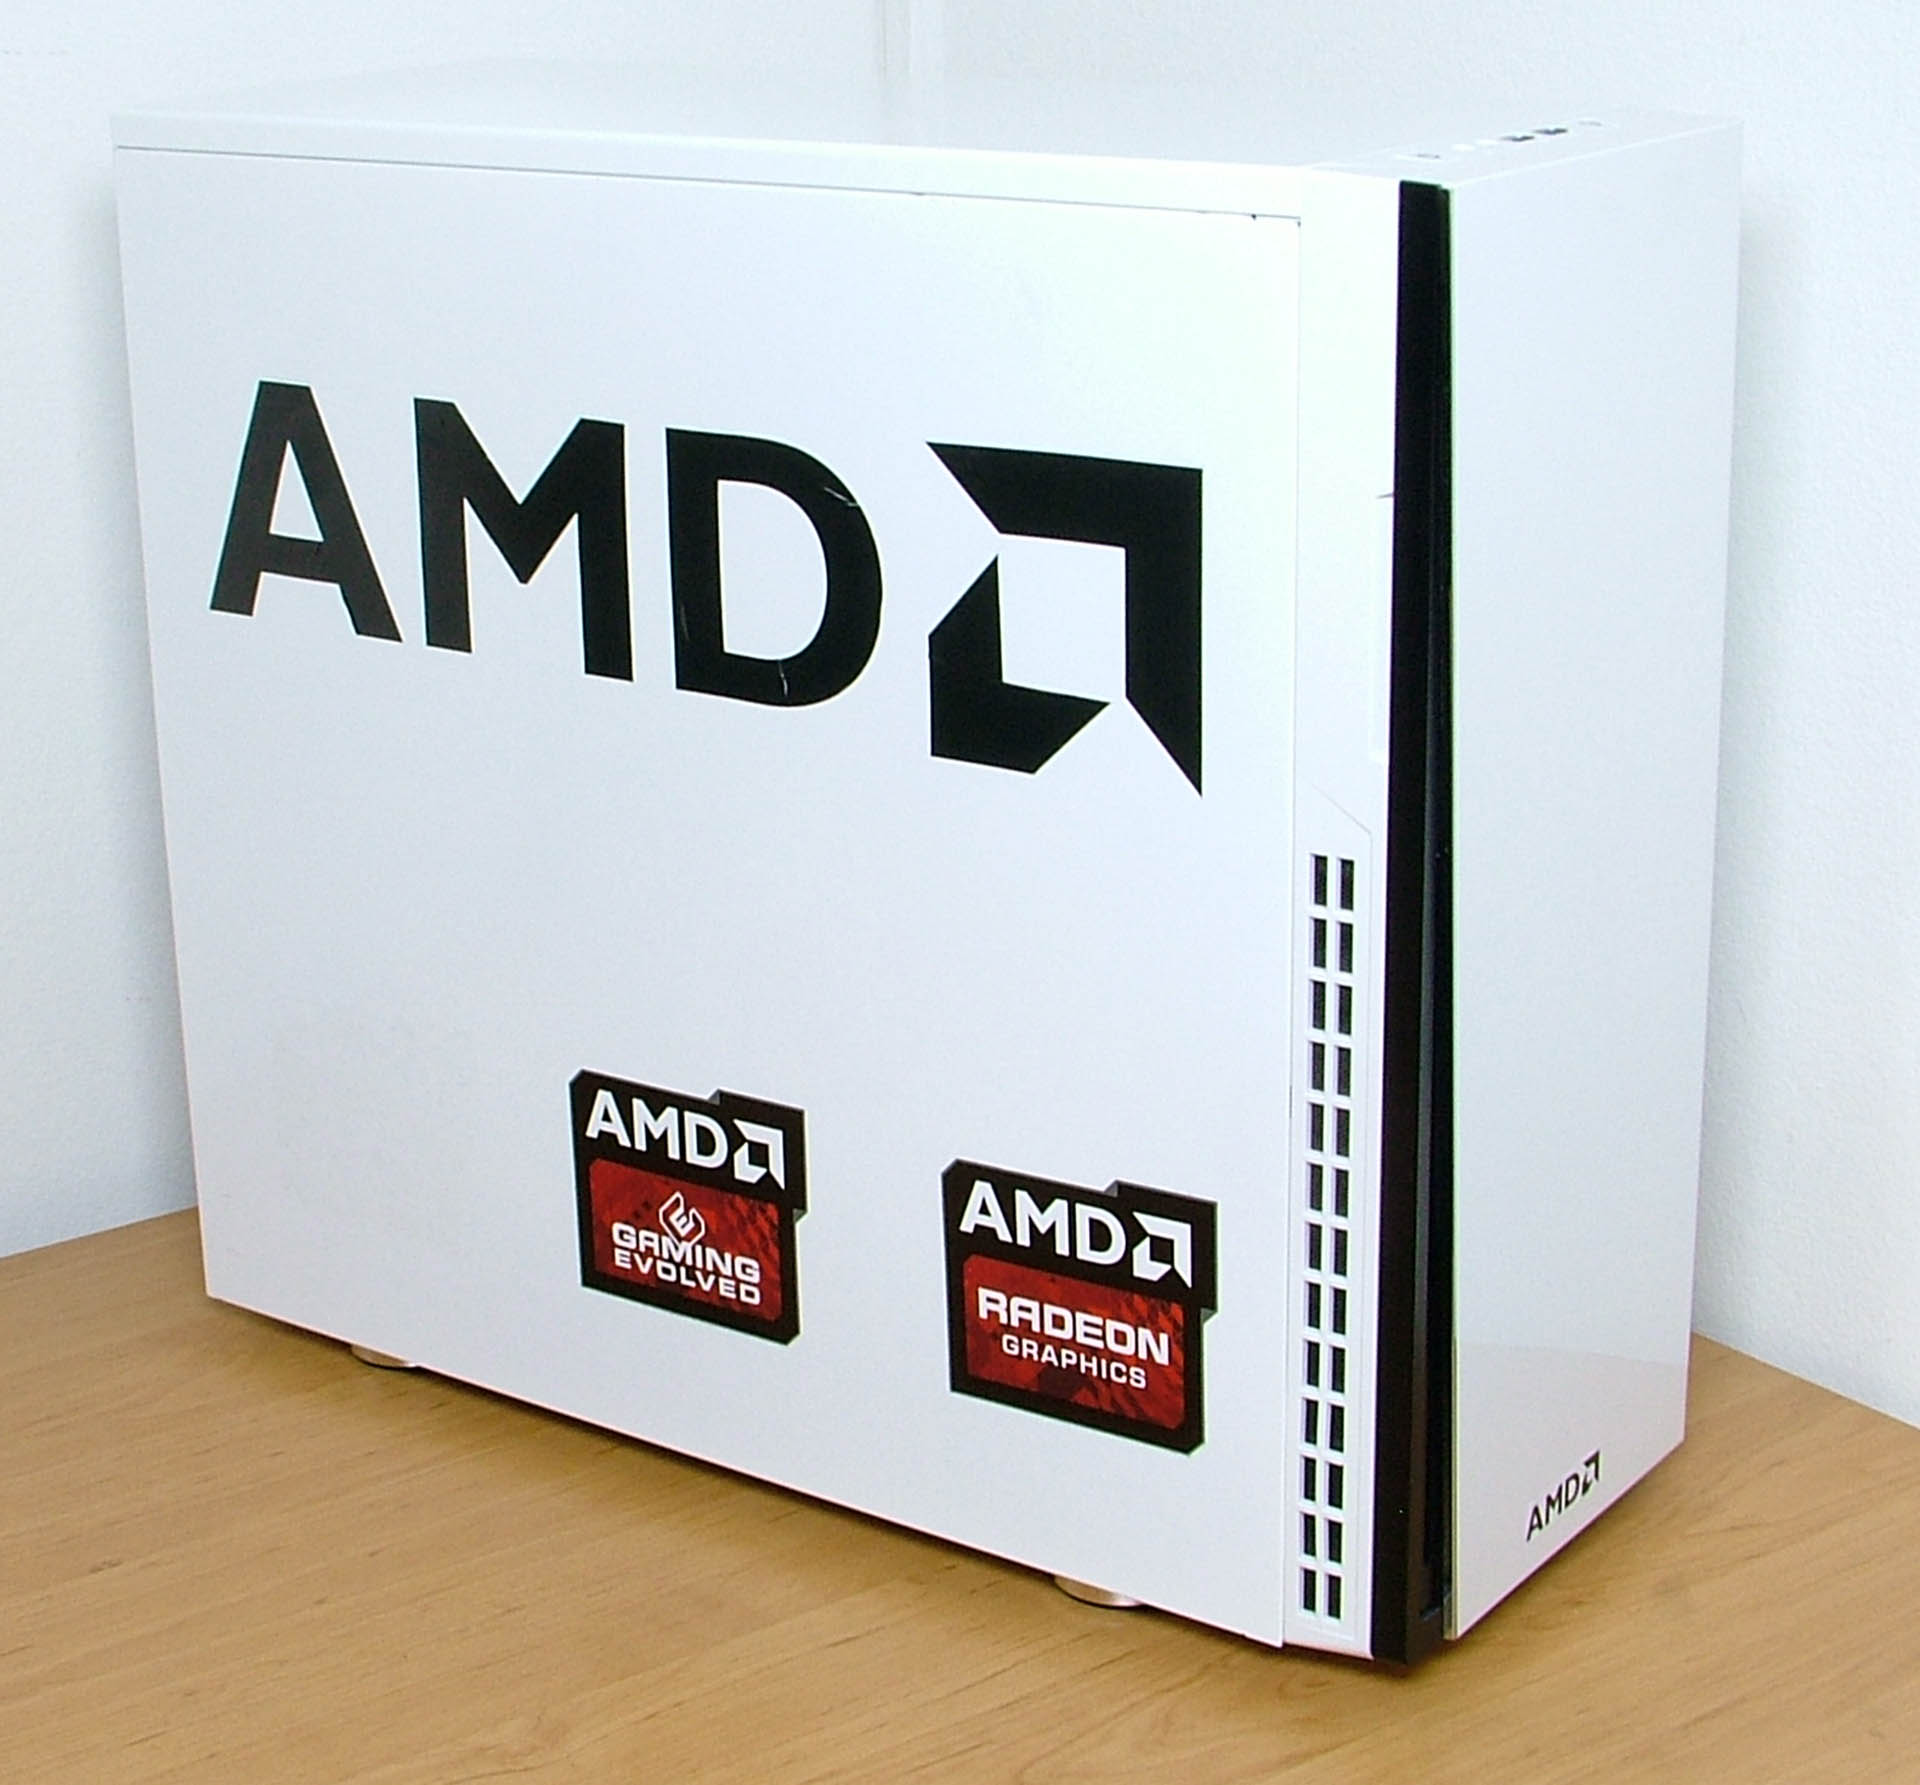 AMD X4 870K White Christmas Edition giveaway